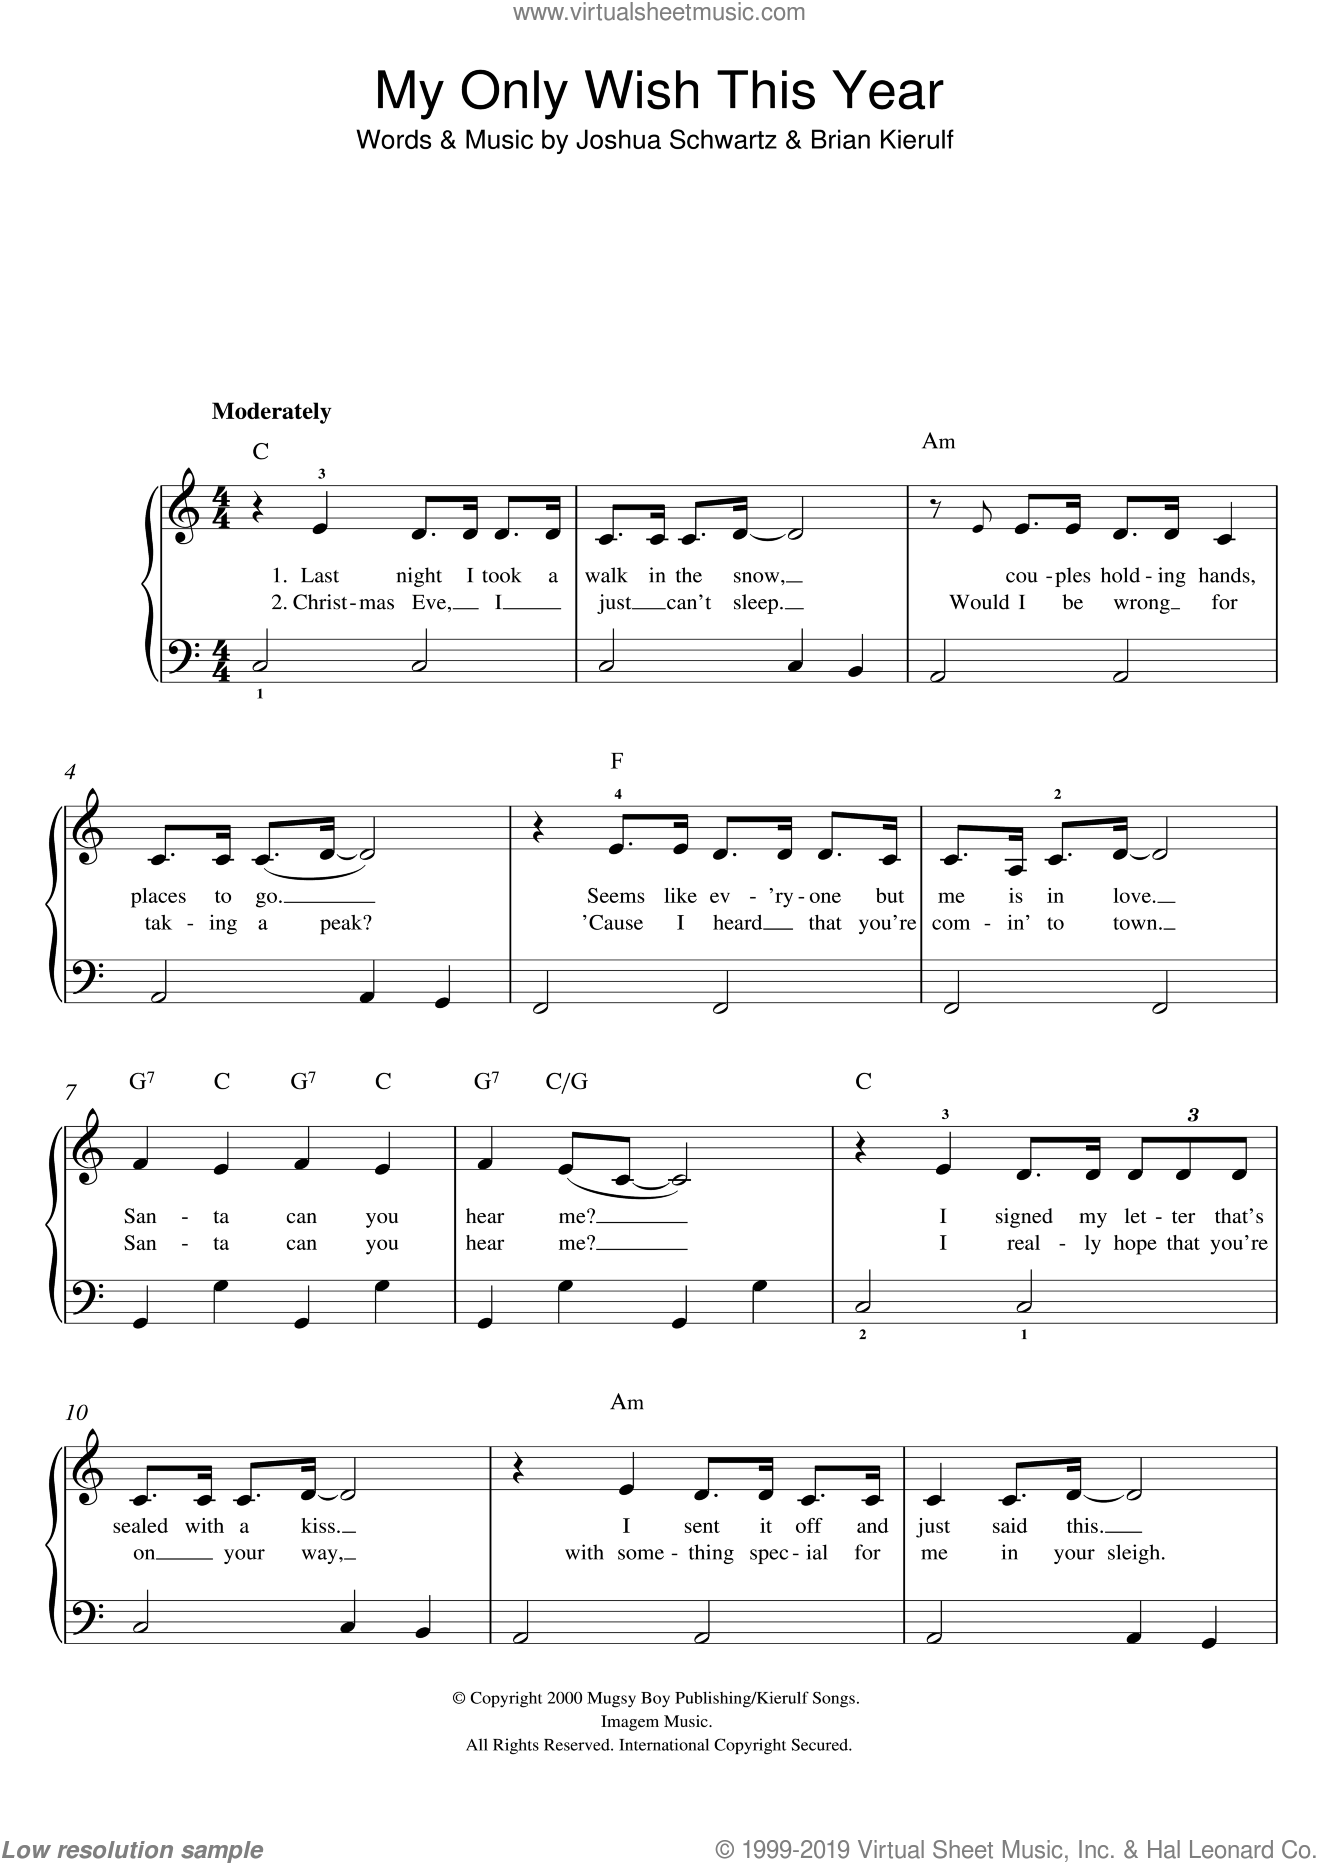 My Only Wish This Year sheet music for piano solo by Britney Spears, Brian Kierulf and Joshua Schwartz, easy skill level